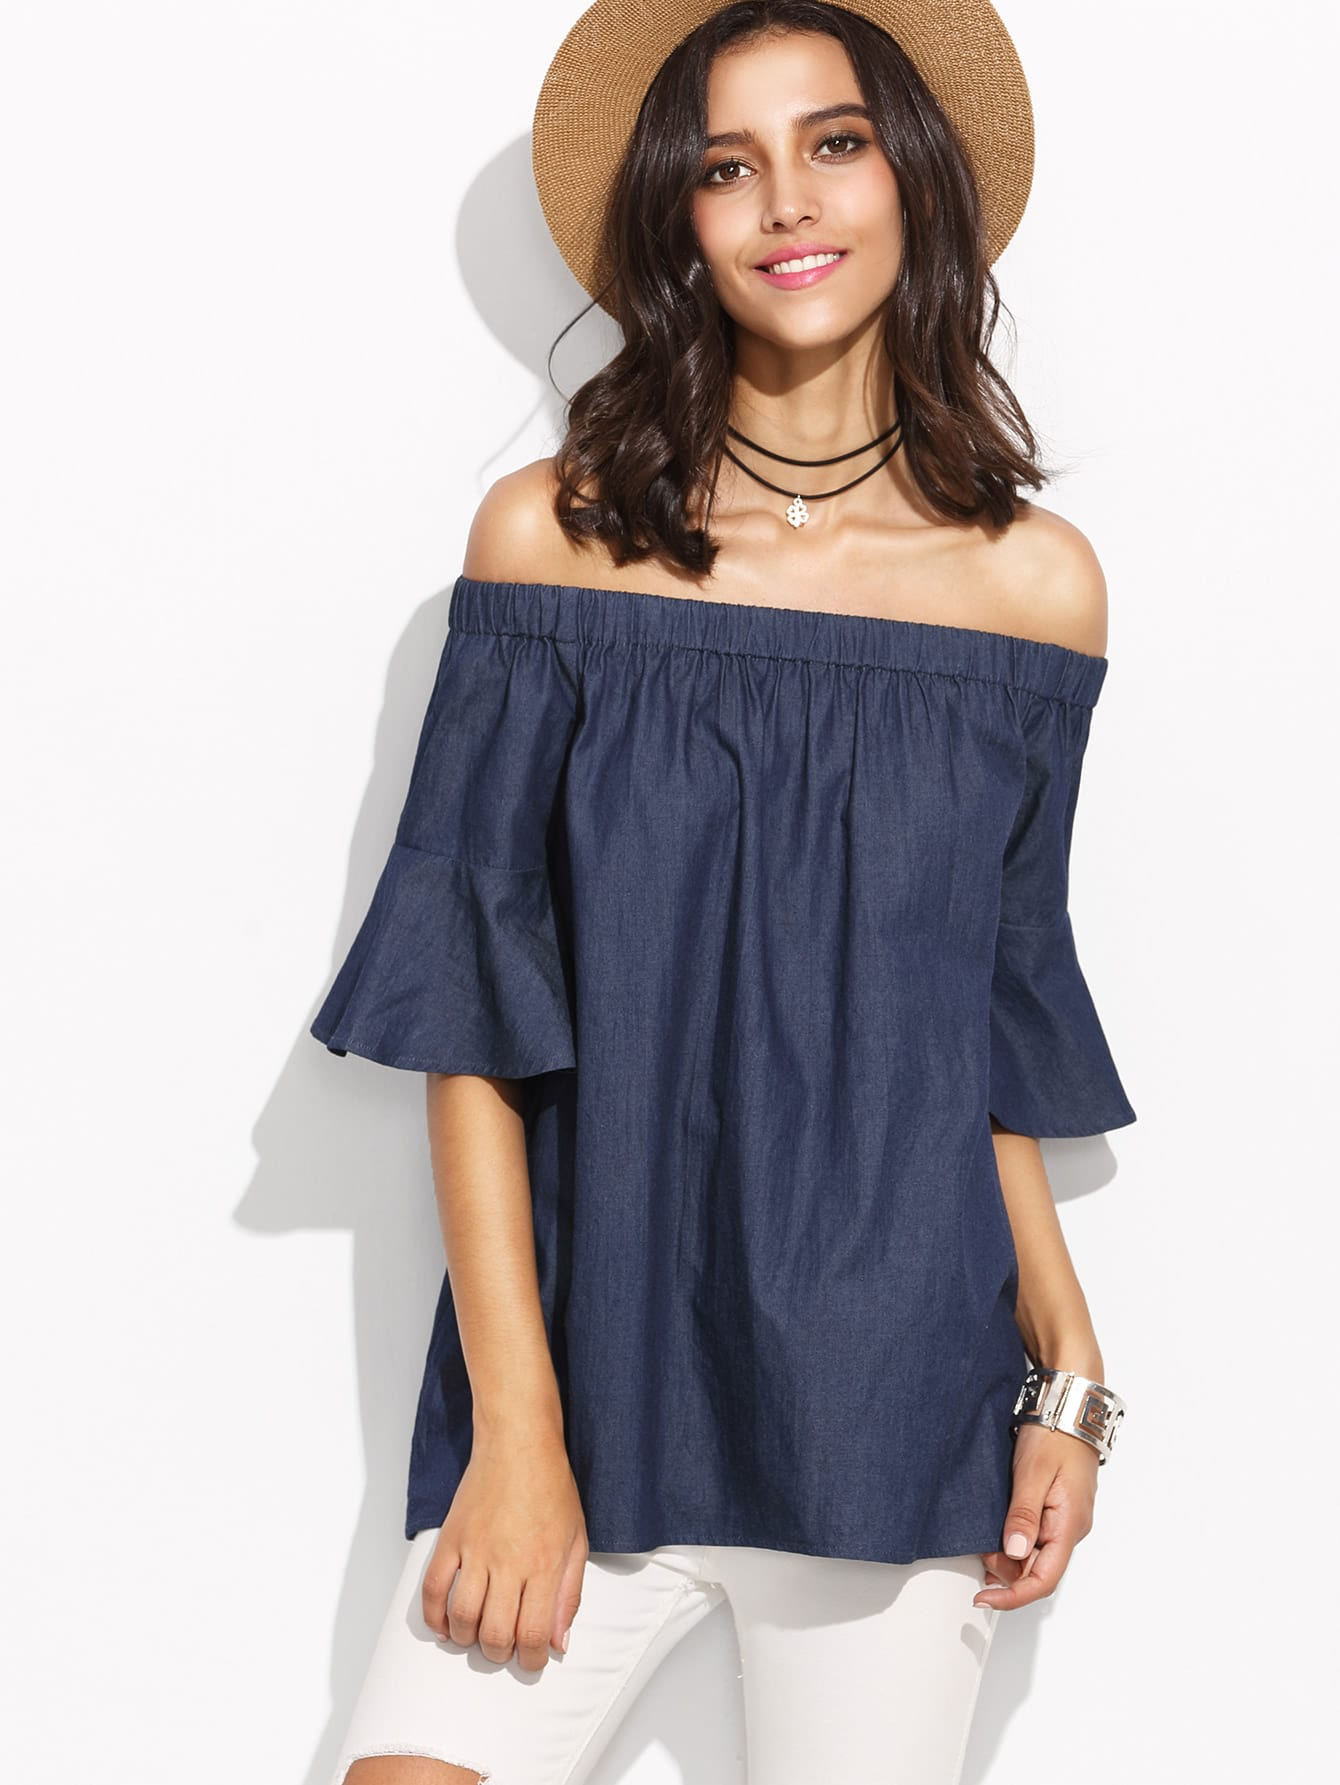 Blue Bell Sleeve Off The Shoulder Chambray TopBlue Bell Sleeve Off The Shoulder Chambray Top<br><br>color: Blue<br>size: L,M,S,XS